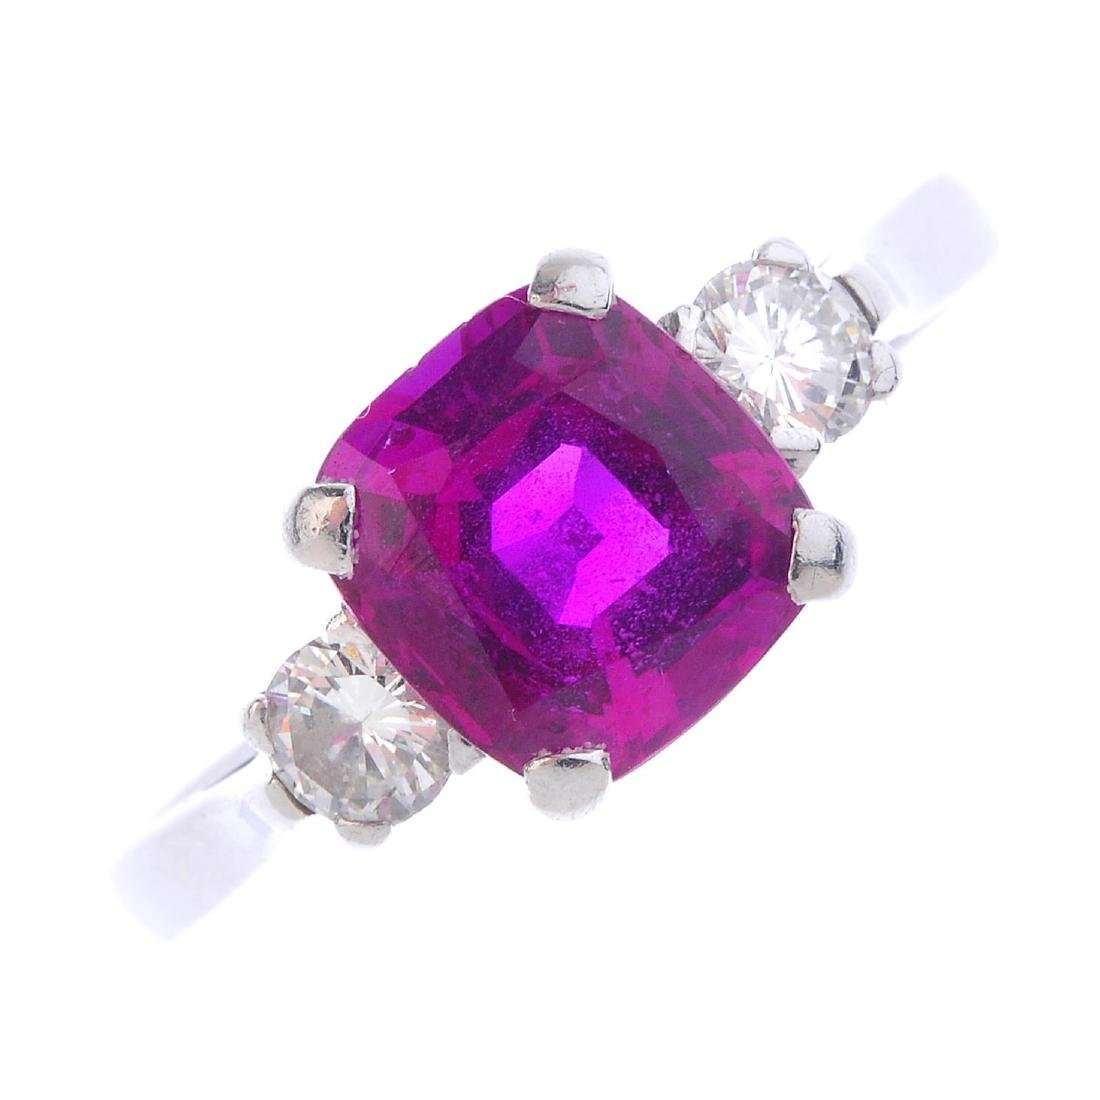 A Burmese ruby and diamond ring. The cushion-shape